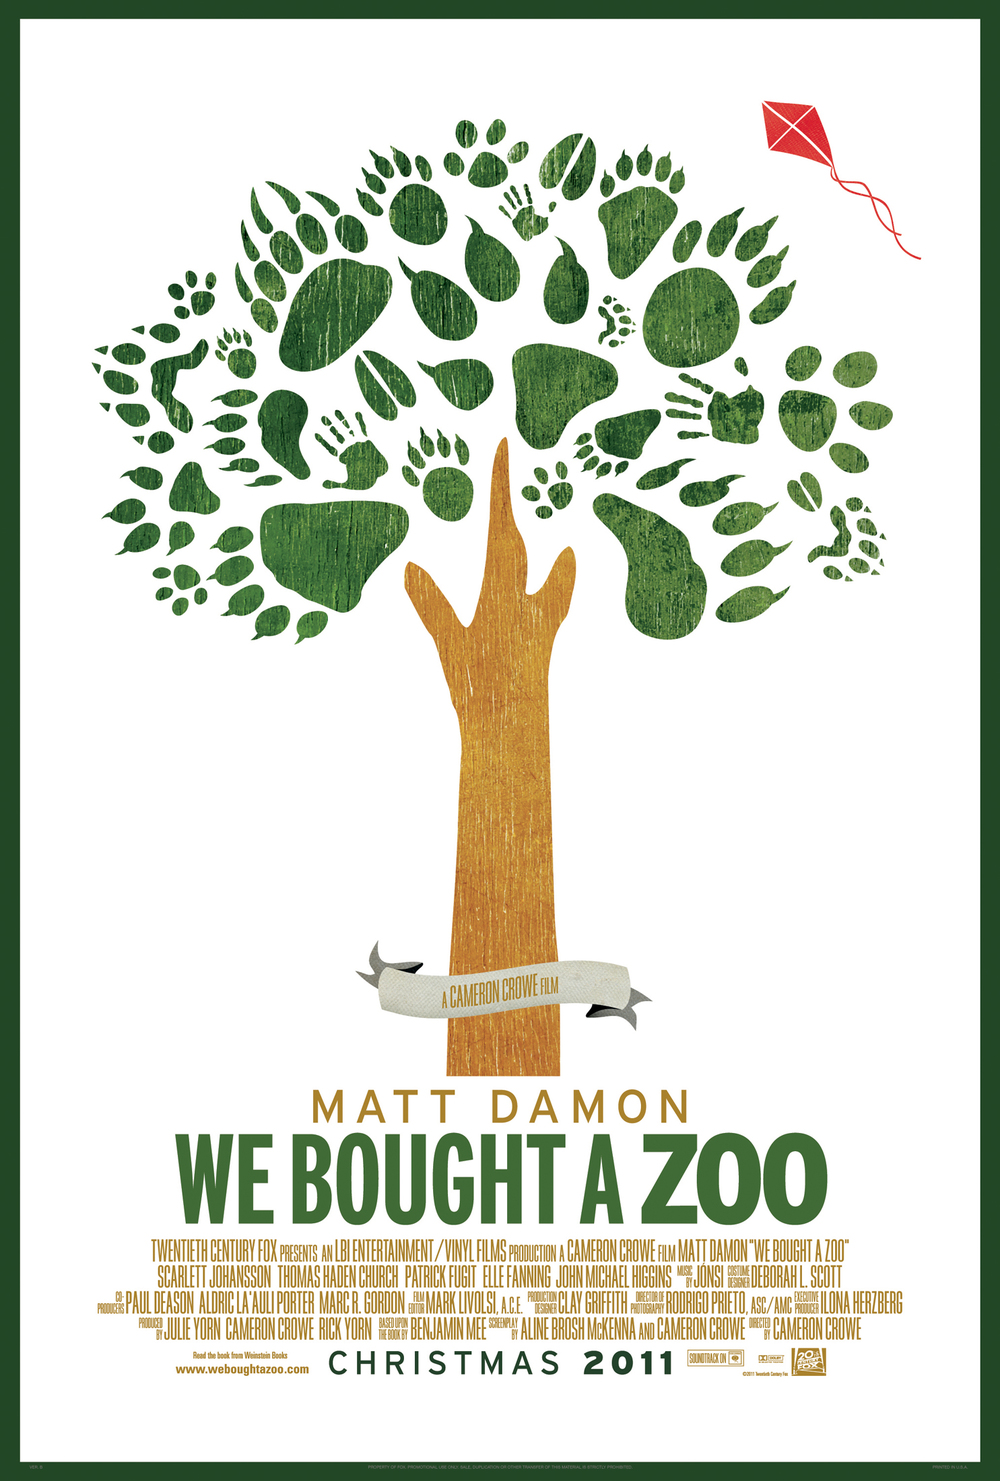 Zoo poster design - I Love The Great Cast The Score By Jonsi And The Fact That Crowe Is Making His Grand Return To The Big Screen Check Out The Poster Below And Share Your